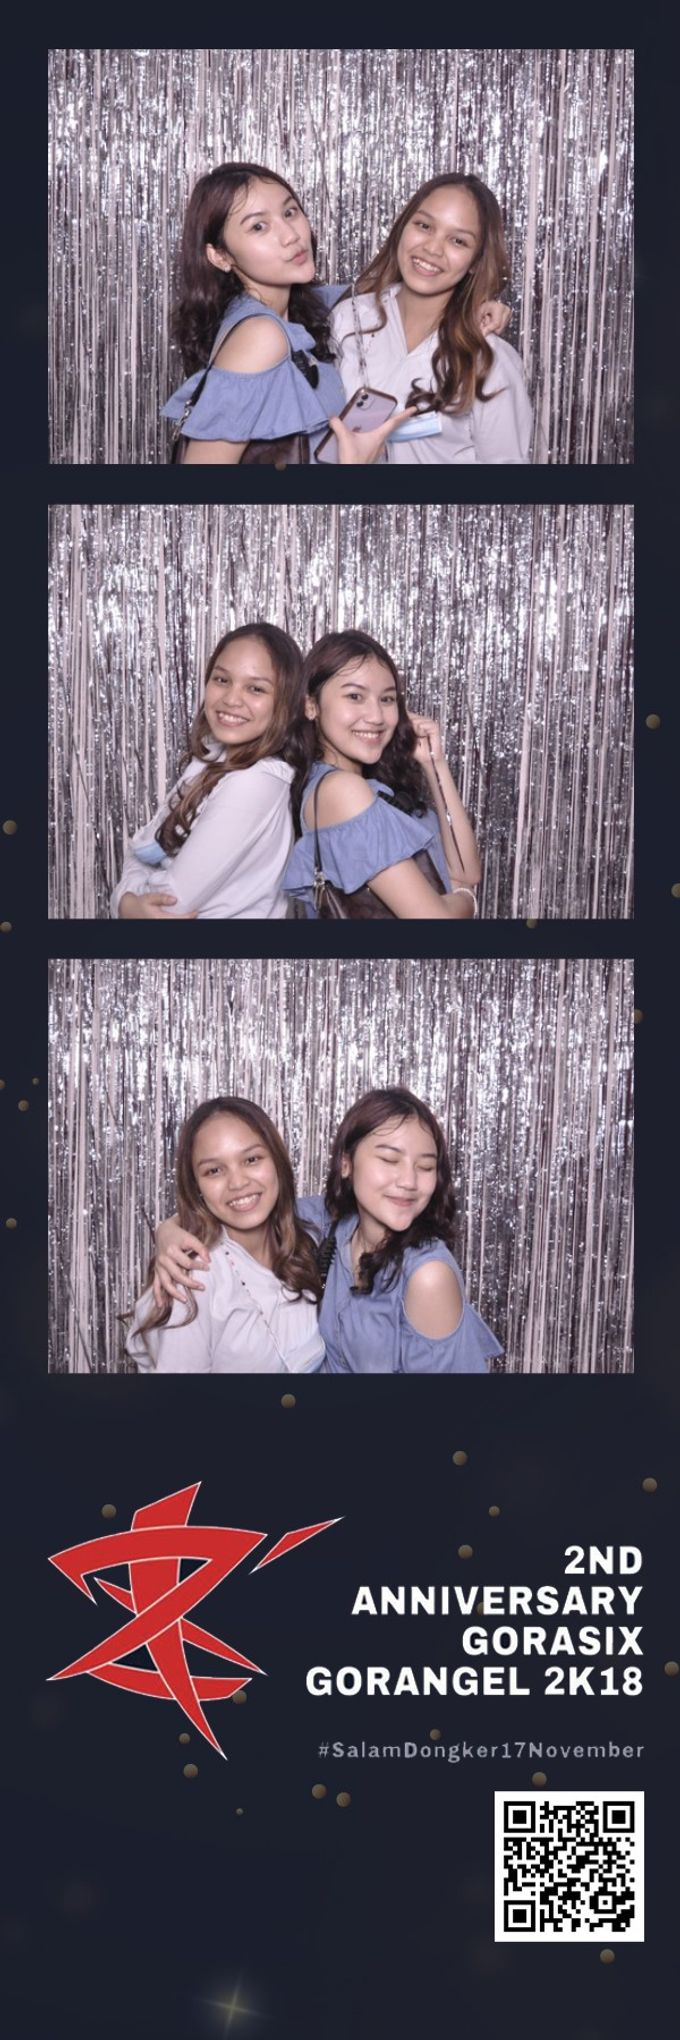 SRIPE PHOTOBOOTH by Picto Booth - 001